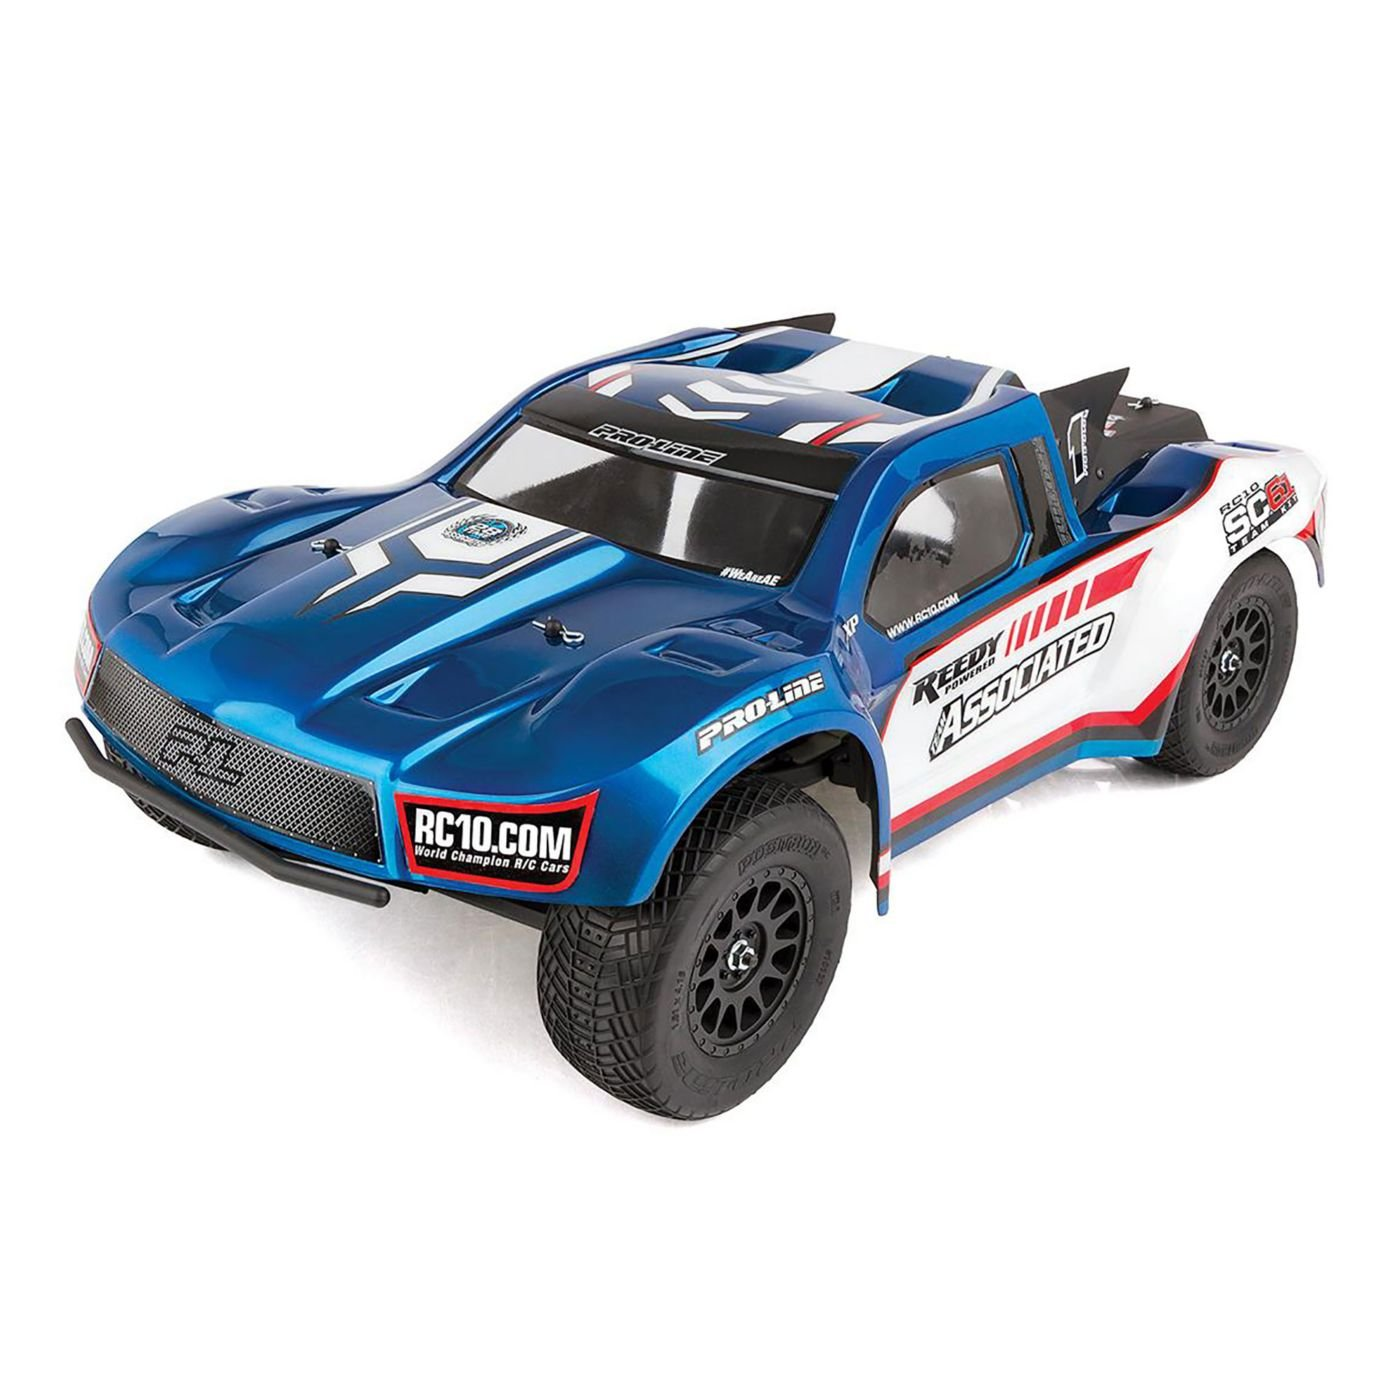 Team Associated 70007 RC10Sc6.1 Team Edition Off Road 1//10 Short Course Truck Kit